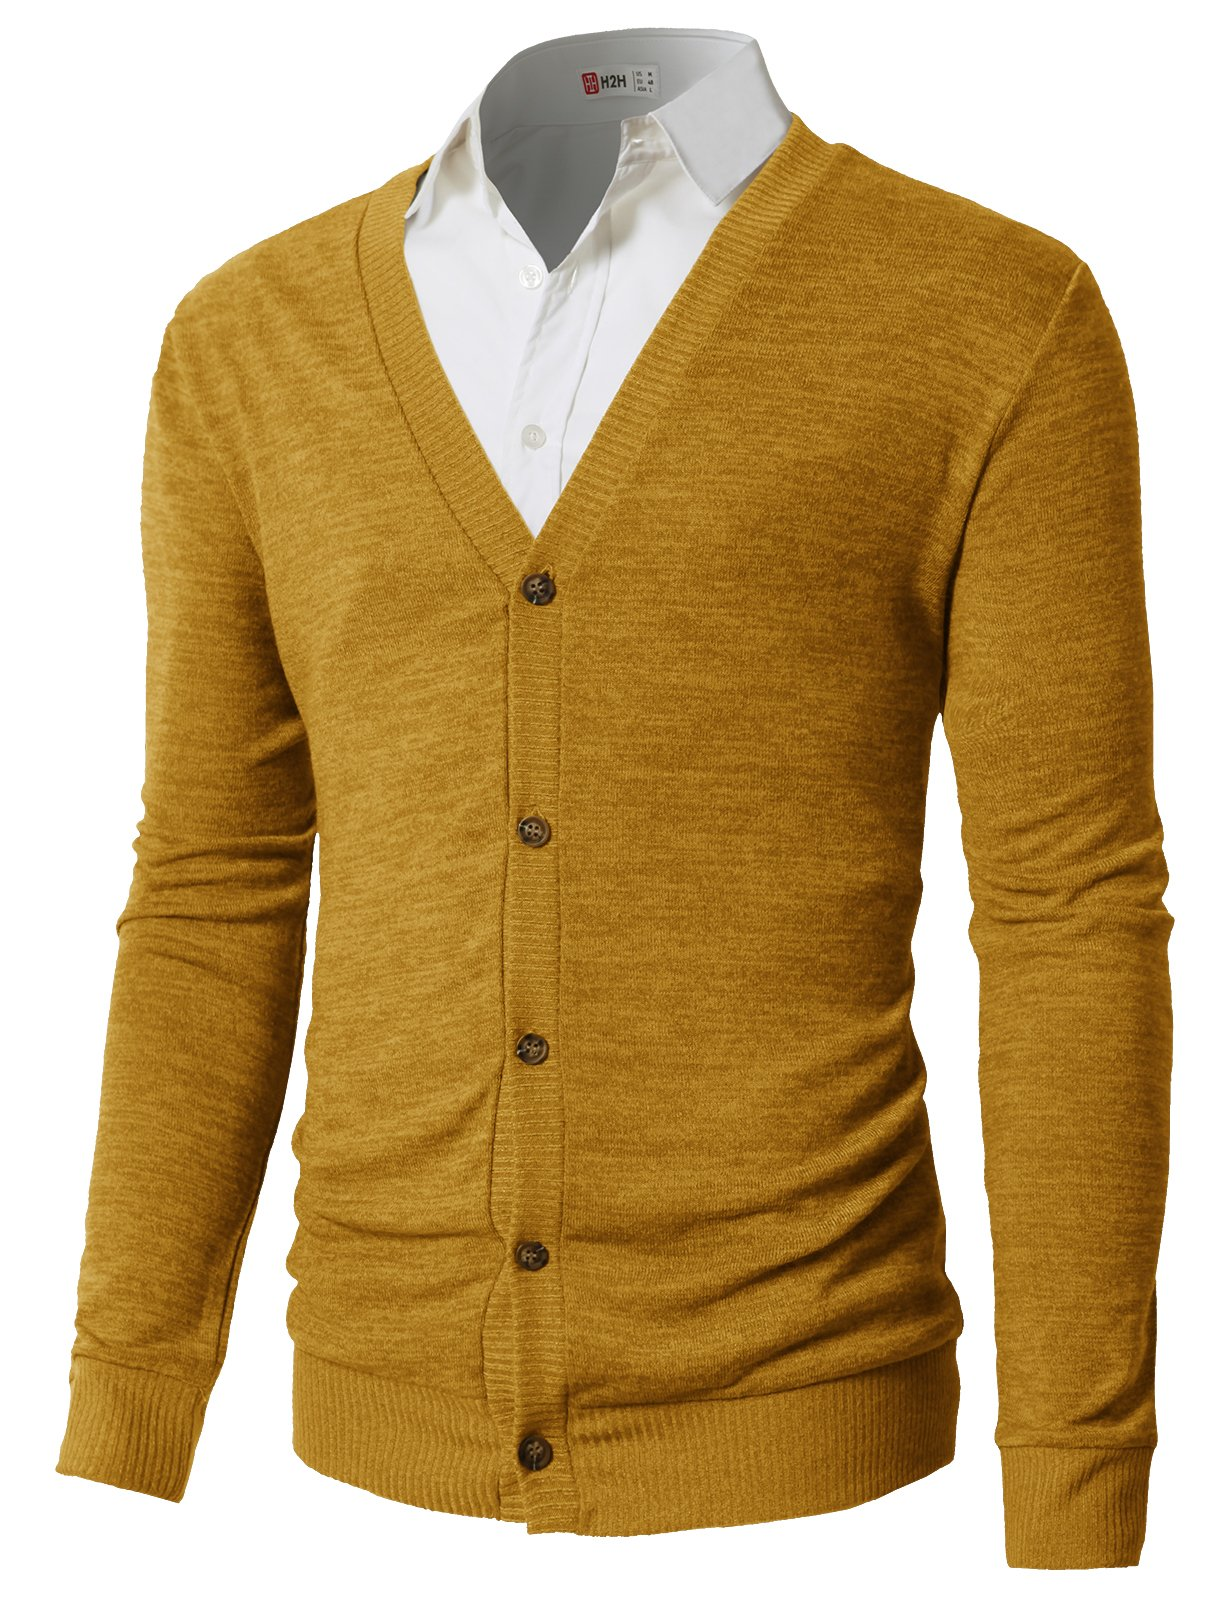 H2H Mens Casual Slim Fit Knitted Cardigan Herringbone Patterned With Pocket Mustard US XL/Asia 2XL (CMOCAL019)